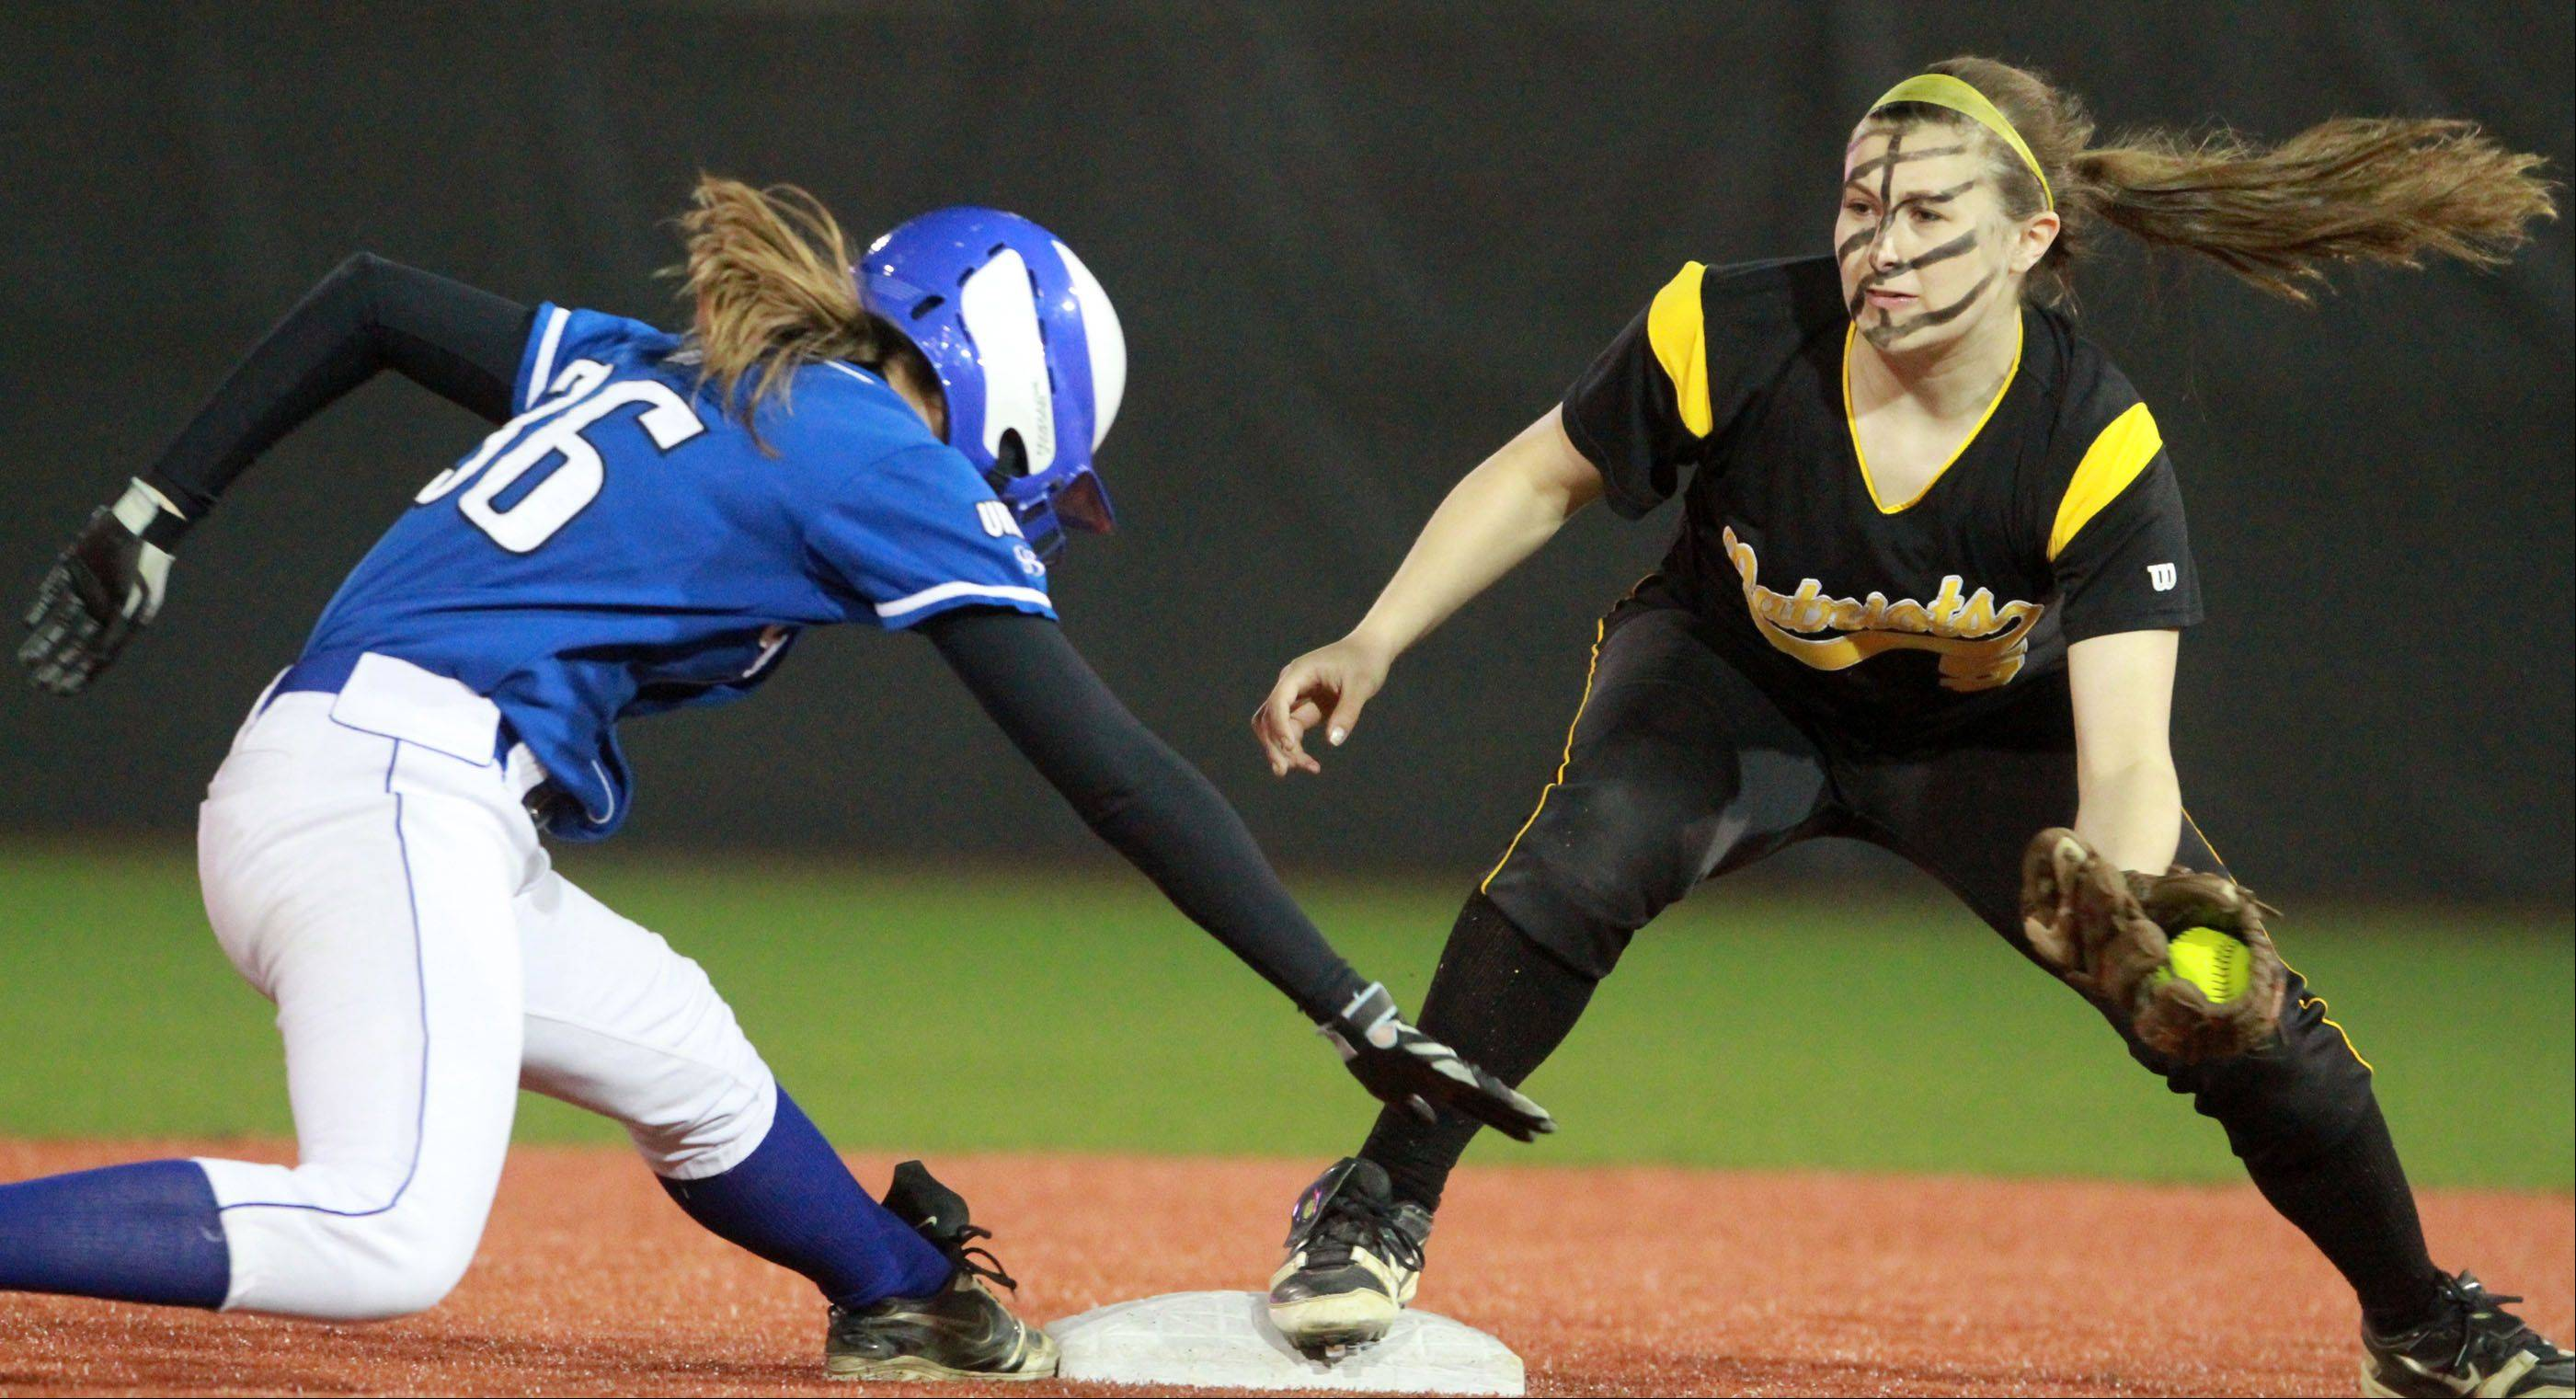 Vernon Hills' Nikki Goldstein reaches back after overrunning second base as Stevenson shortstop Taylor Koenigs reaches for the tag at The Ballpark at Rosemont on Friday.